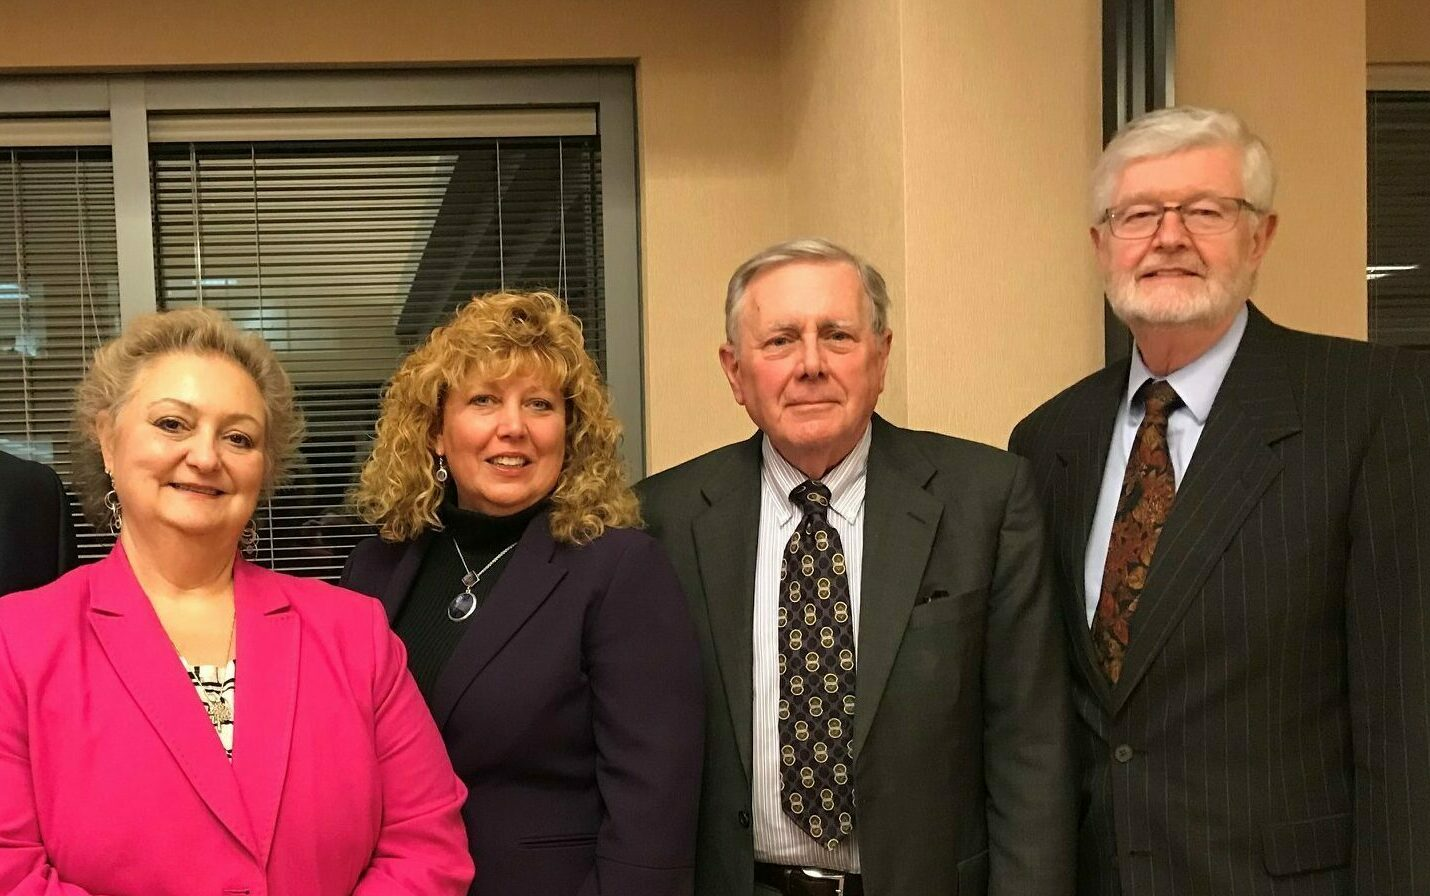 group photo of board members Carla Palumbo, Bruce Lawrence and David Schraver with Foundation Executive Deborah Auspelmyer